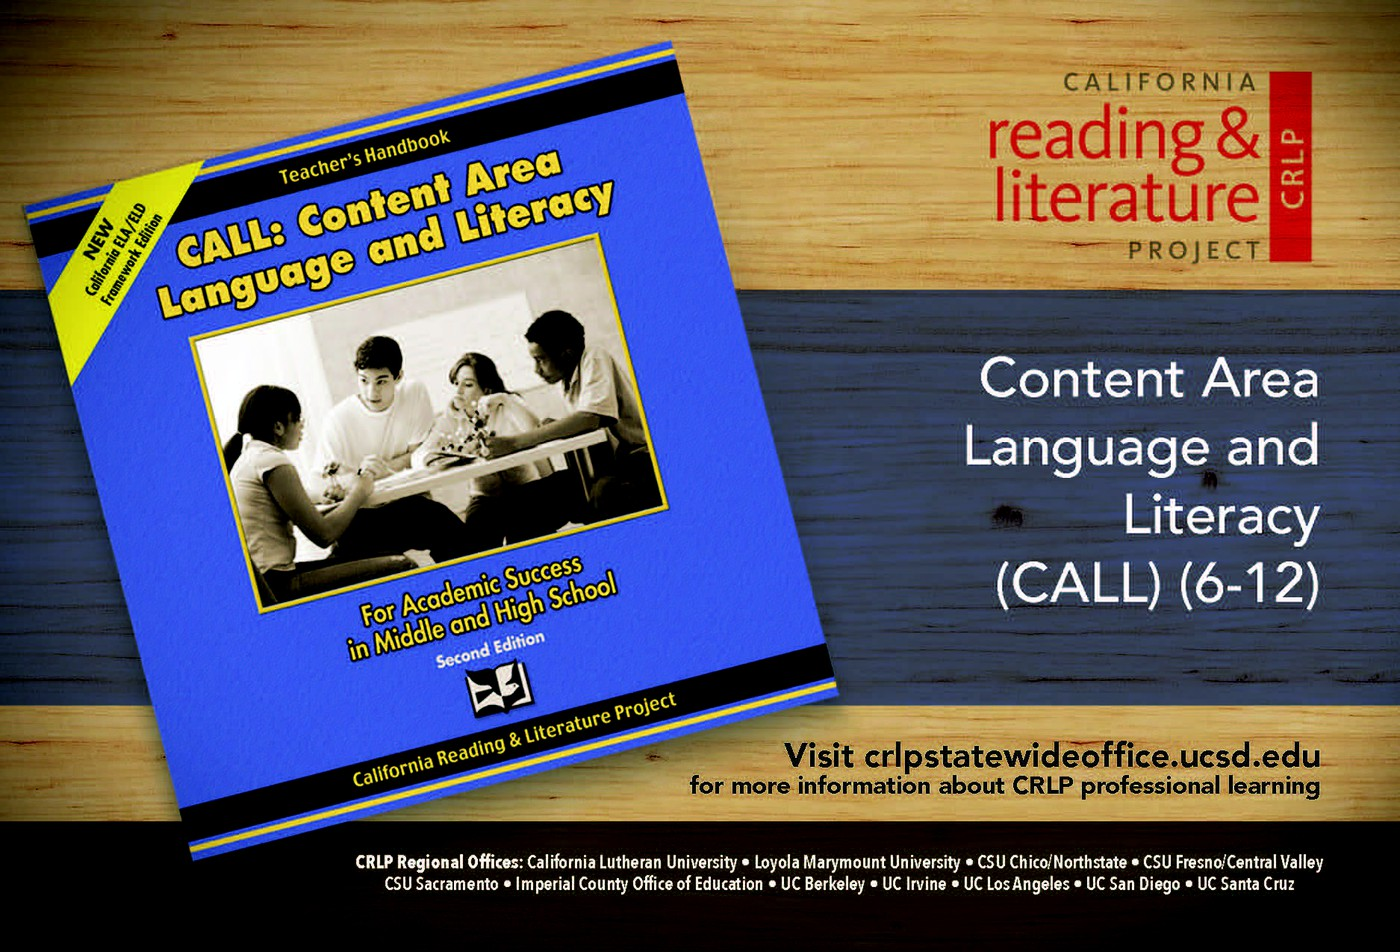 Content Area Language and Literacy (CALL) — California Reading